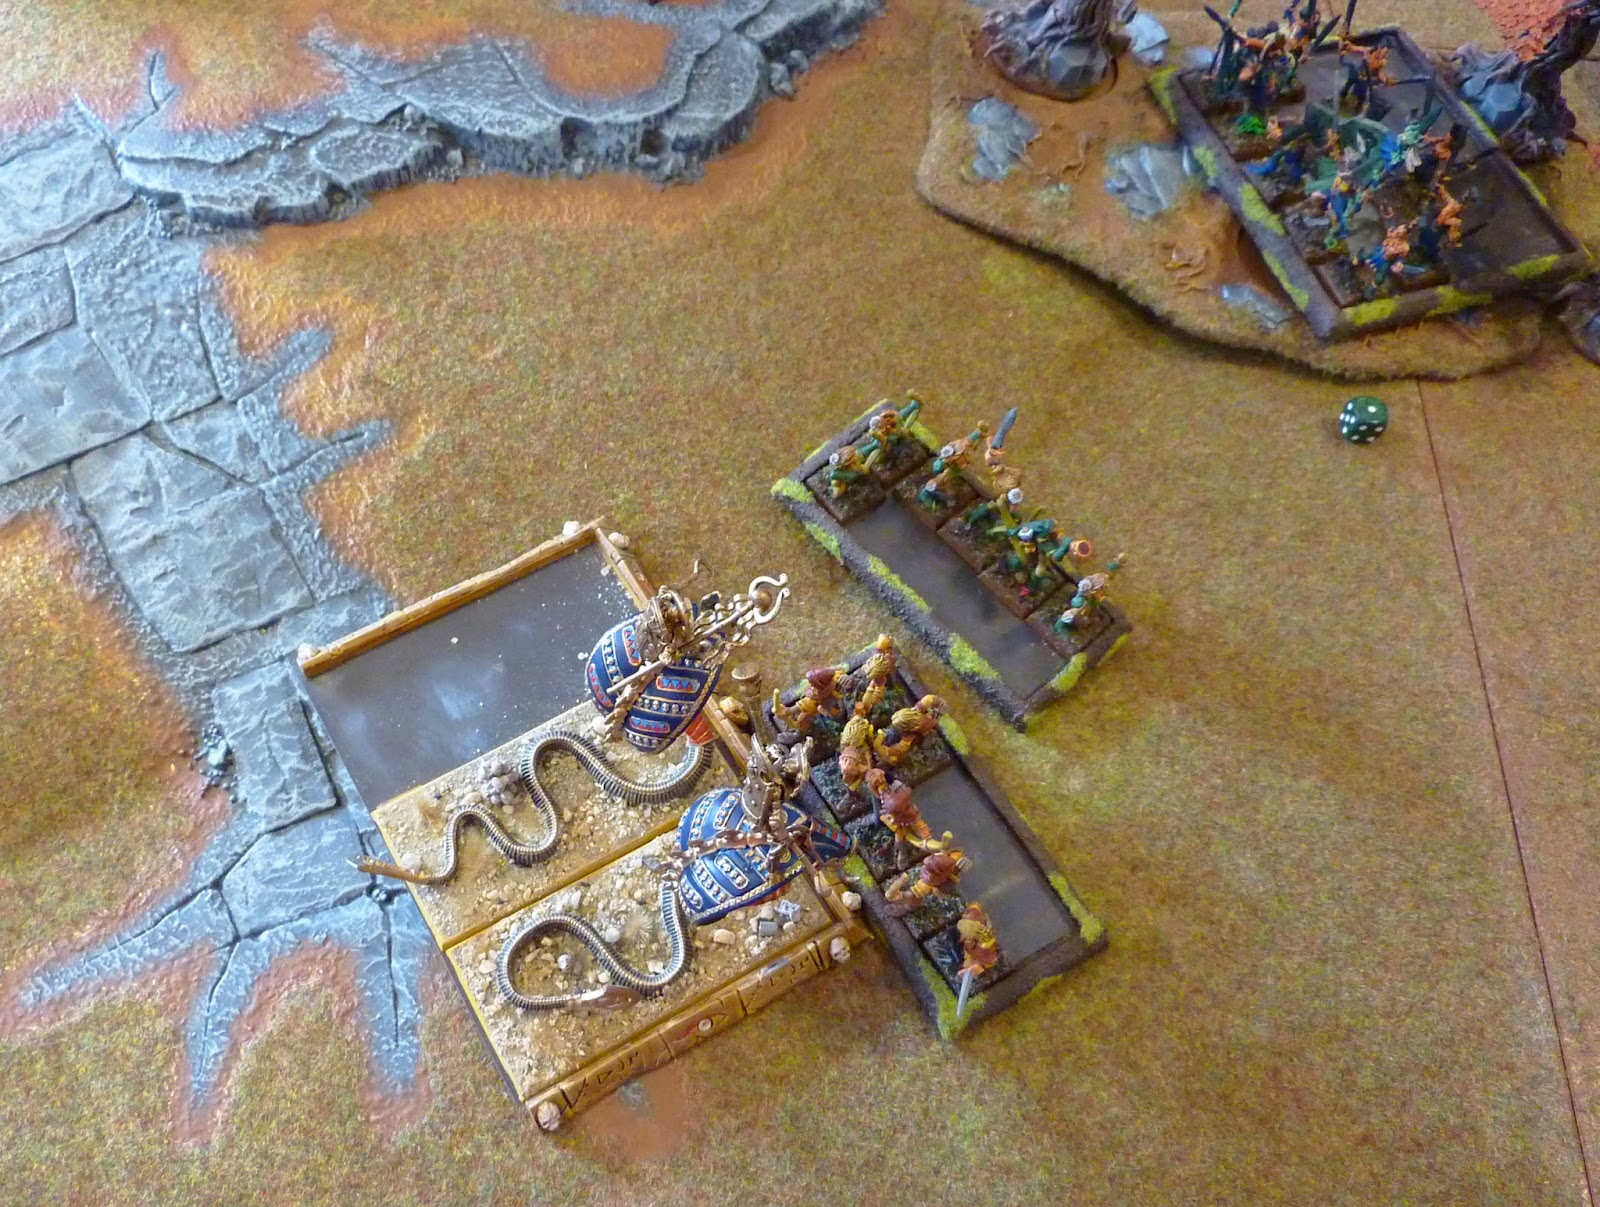 A Warhammer Fantasy Battle Report between Wood Elves and Tomb Kings.